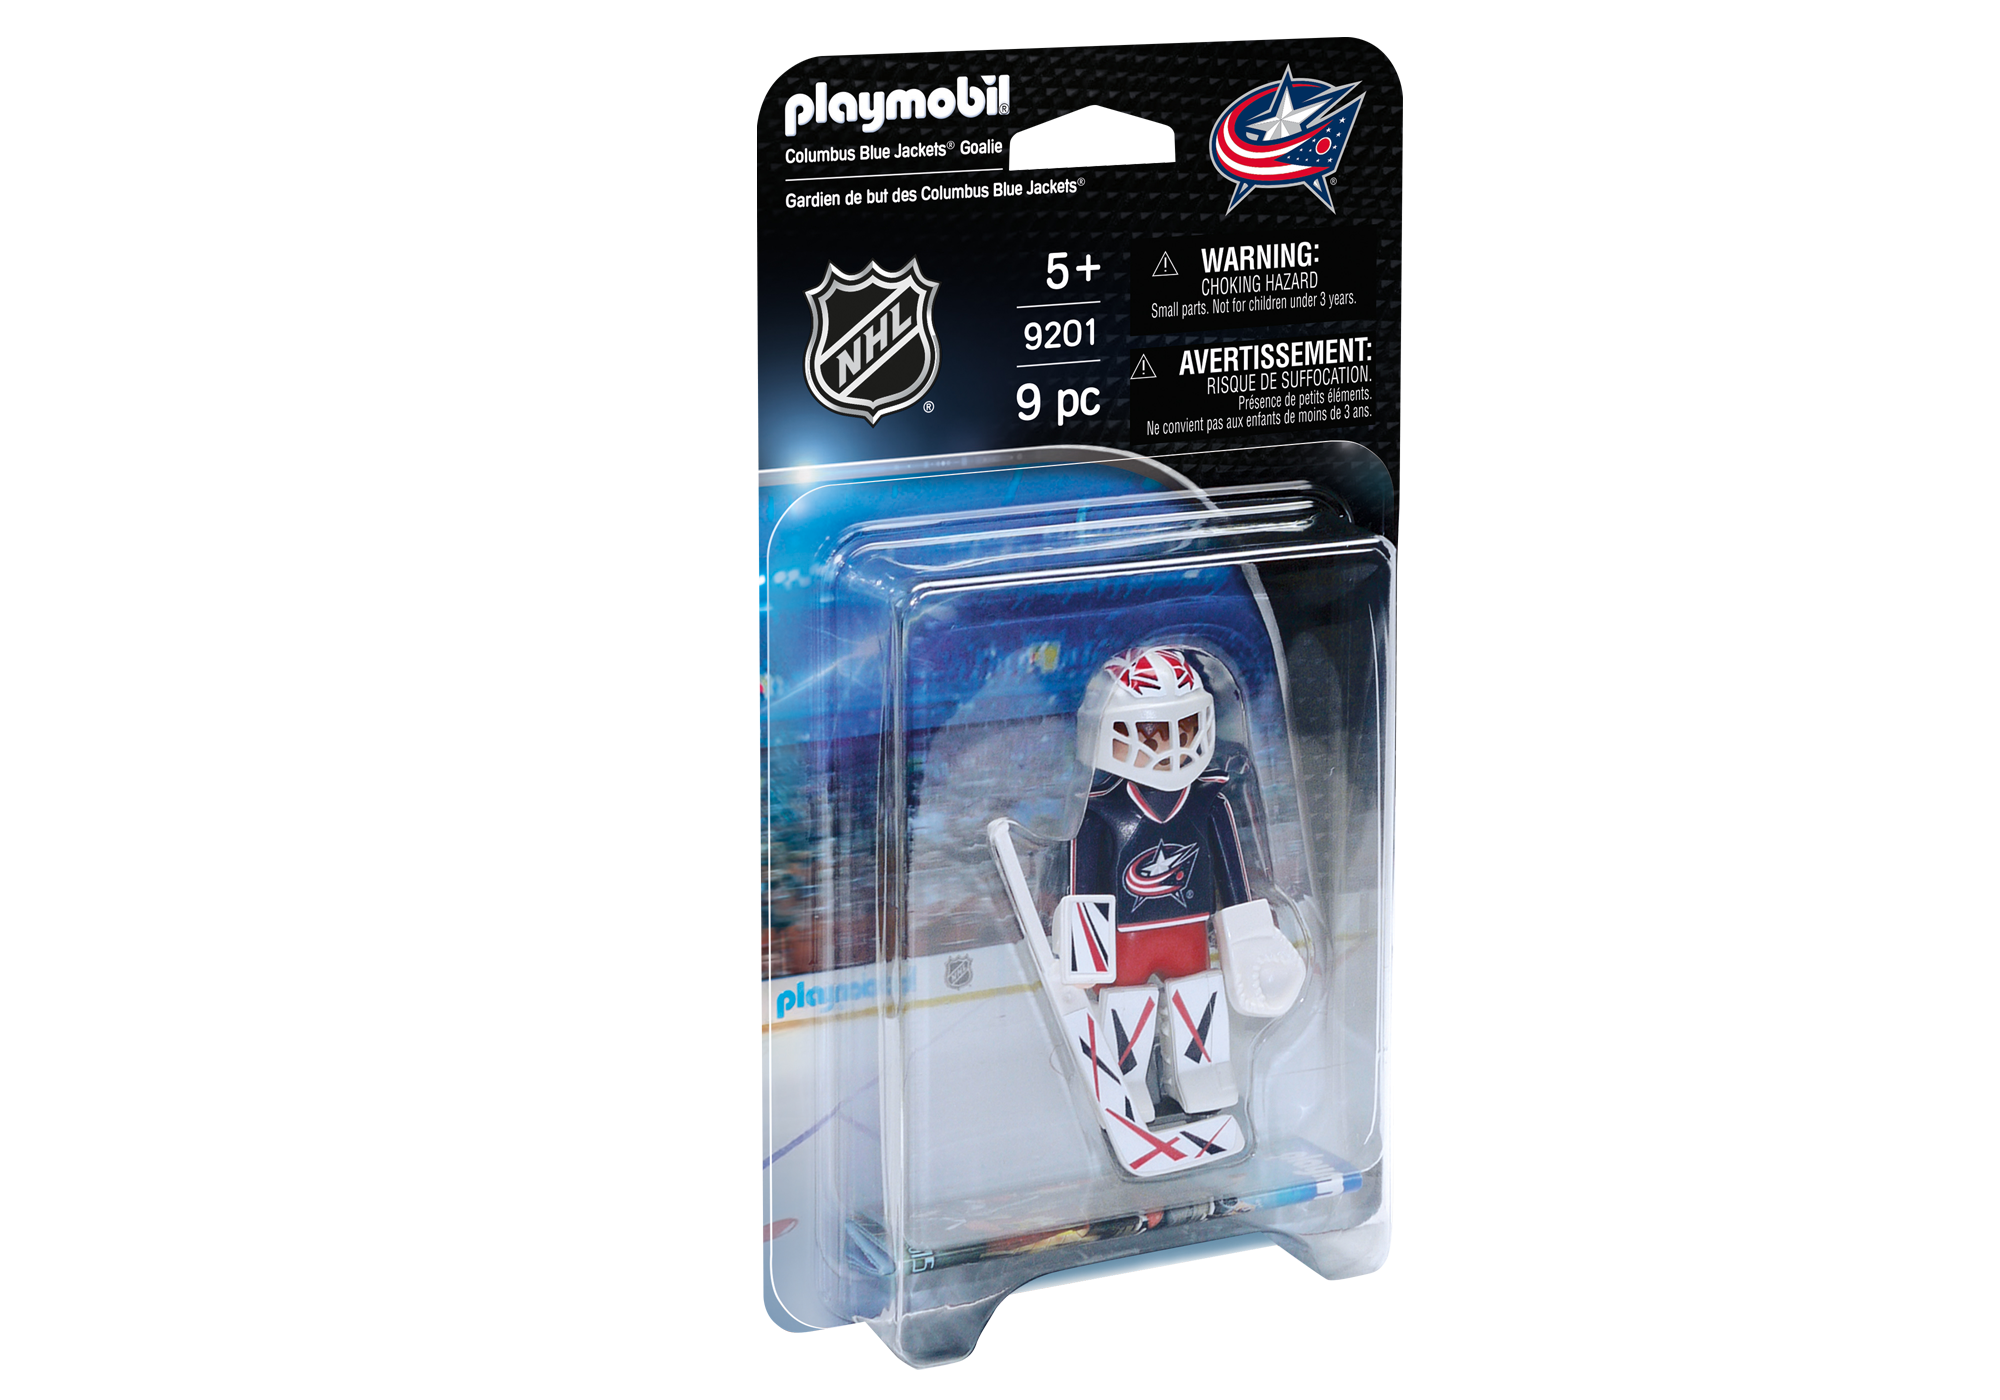 http://media.playmobil.com/i/playmobil/9201_product_box_front/NHL® Columbus Blue Jackets® Goalie